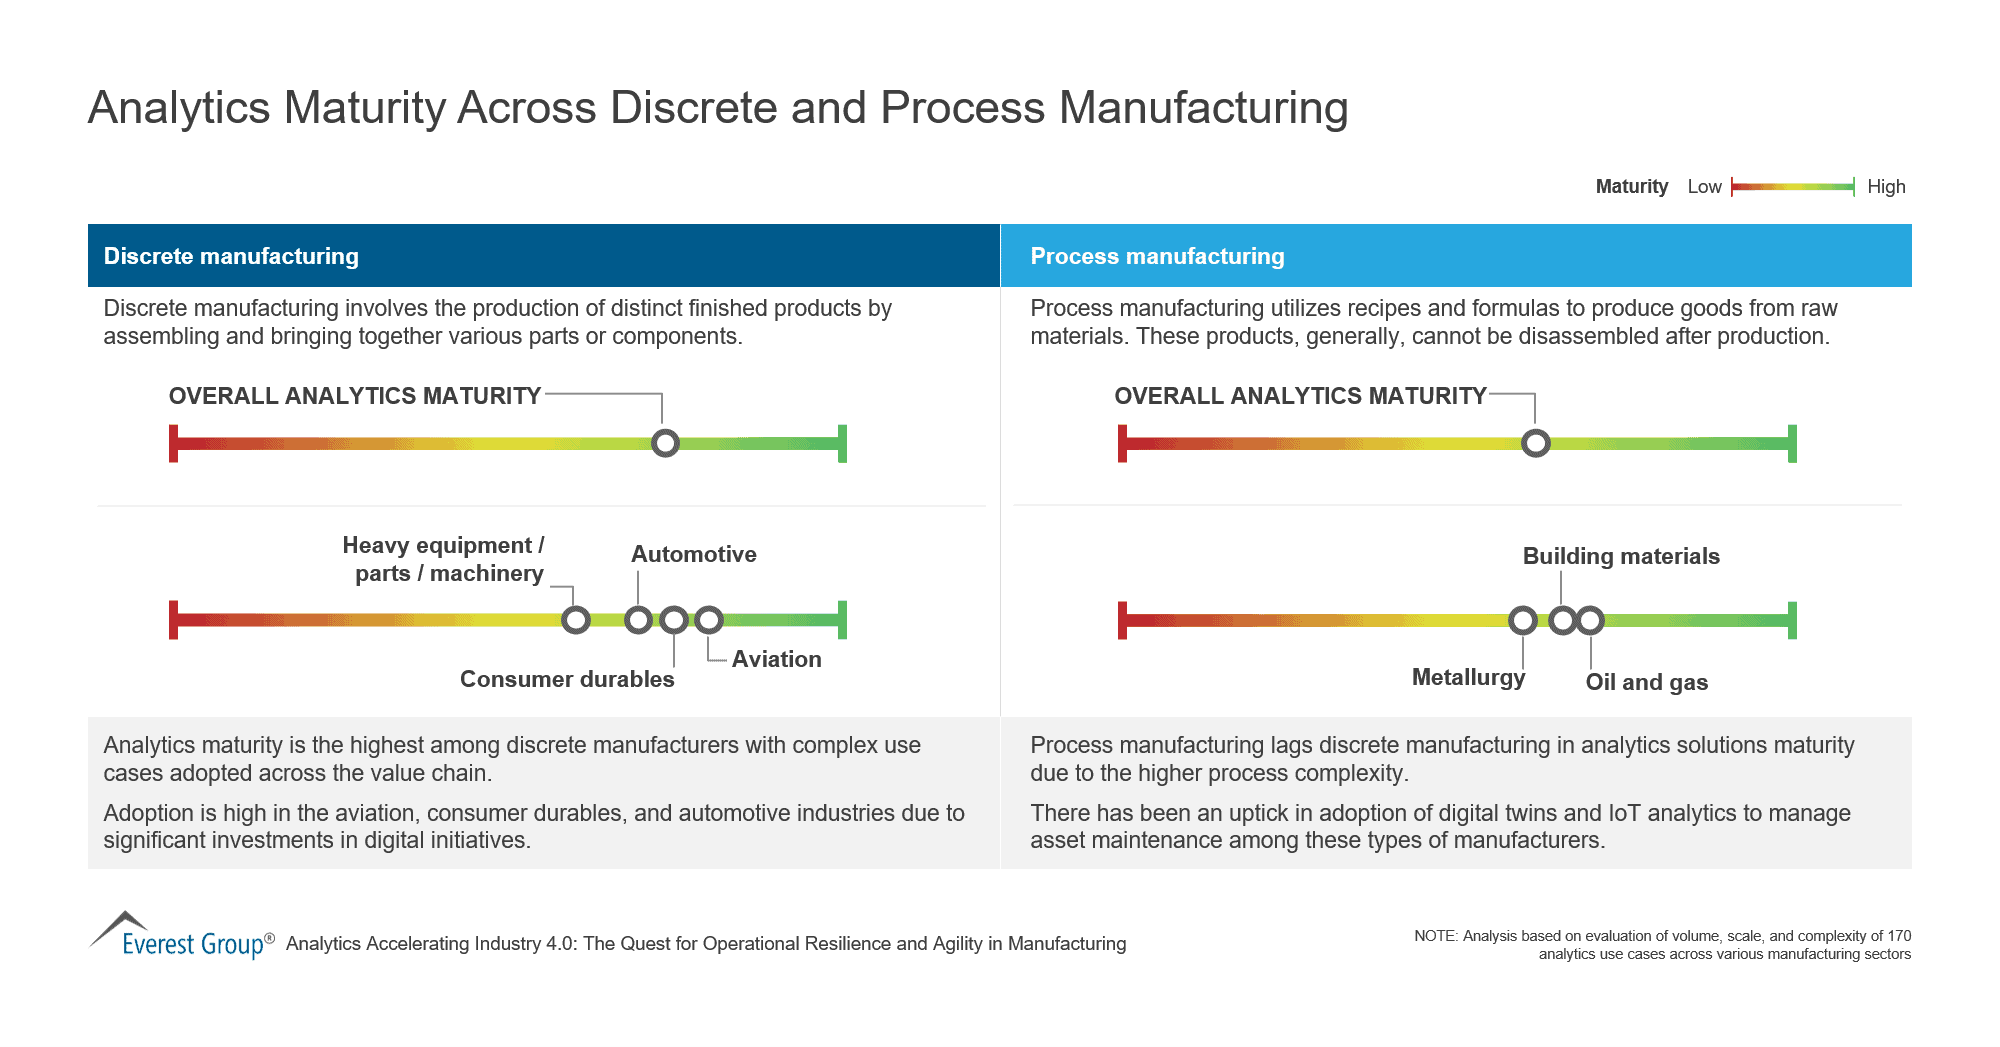 Analytics Maturity Across Discrete and Process Manufacturing